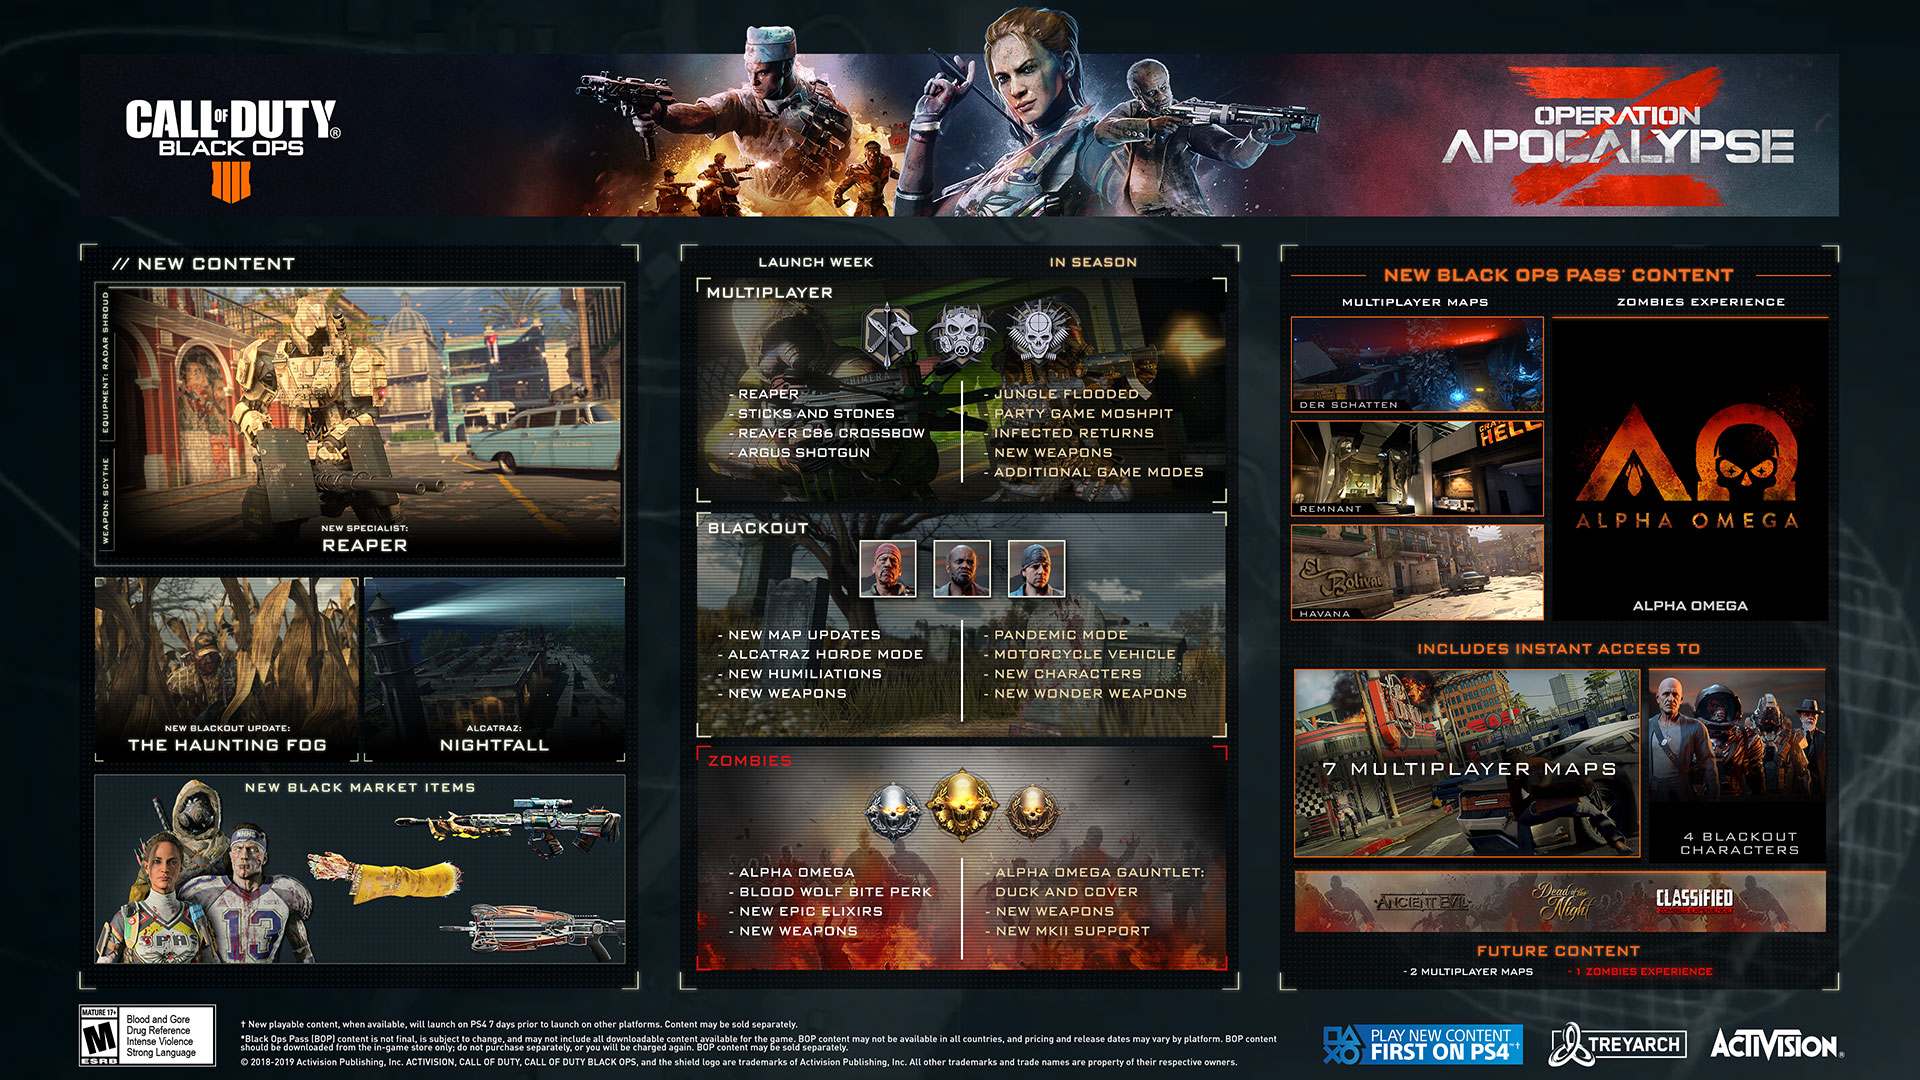 Announcing Call Of Duty Black Ops 4 S Operation Apocalypse Z Unleashed On The Playstation 4 On July 9